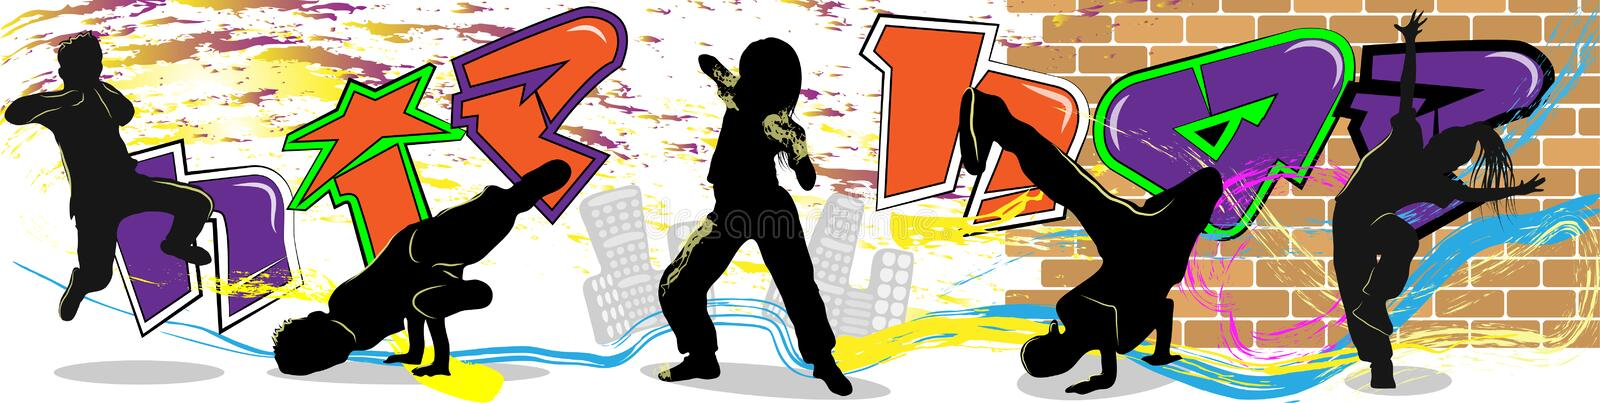 Hip hop dancer on wall and city background stock illustration